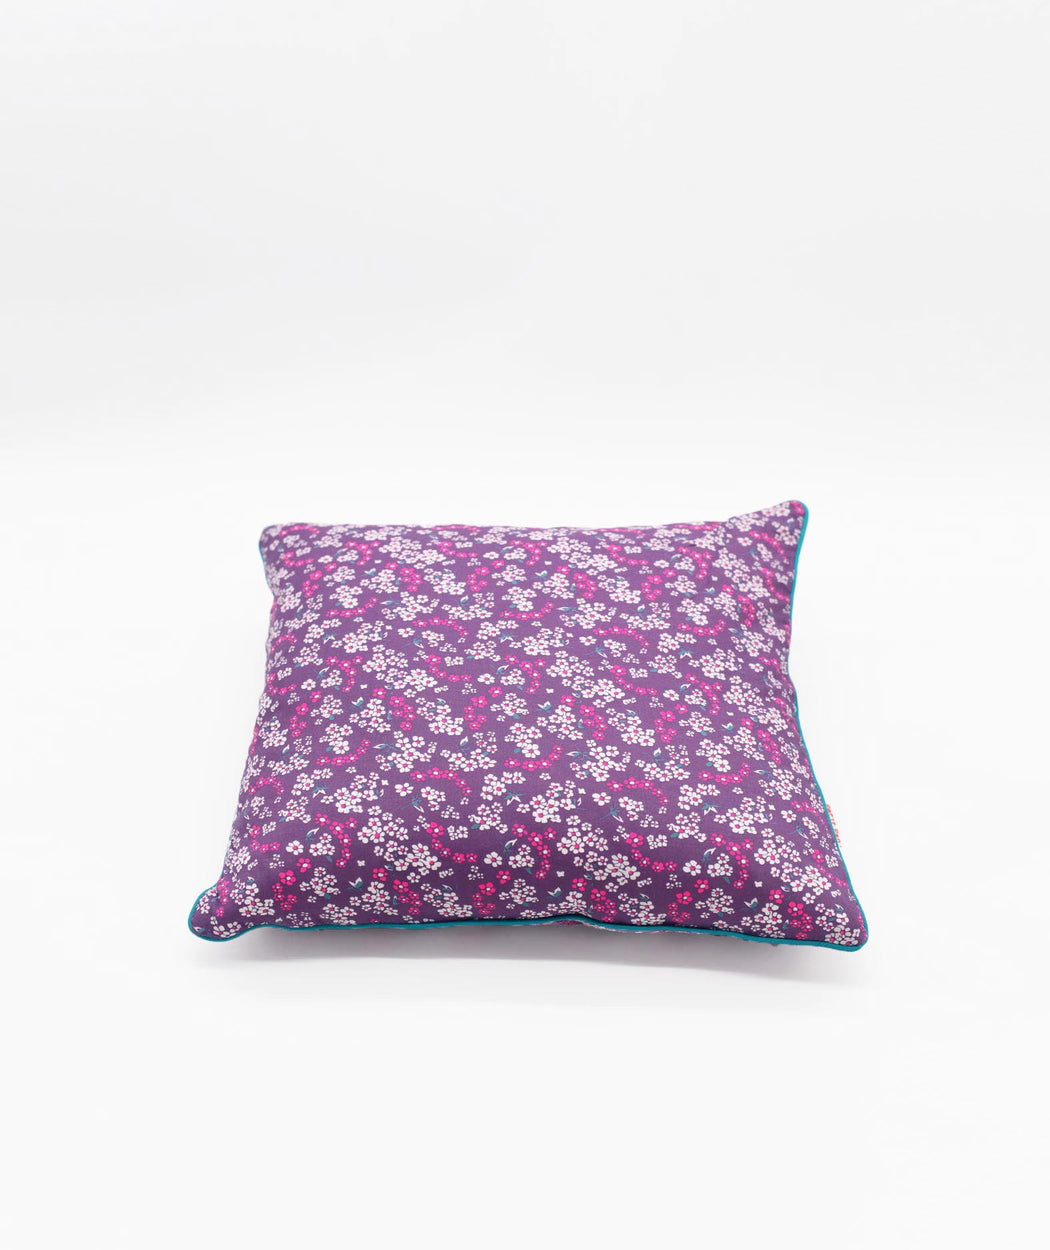 Coussin carré 3 boutons Hanako lilas